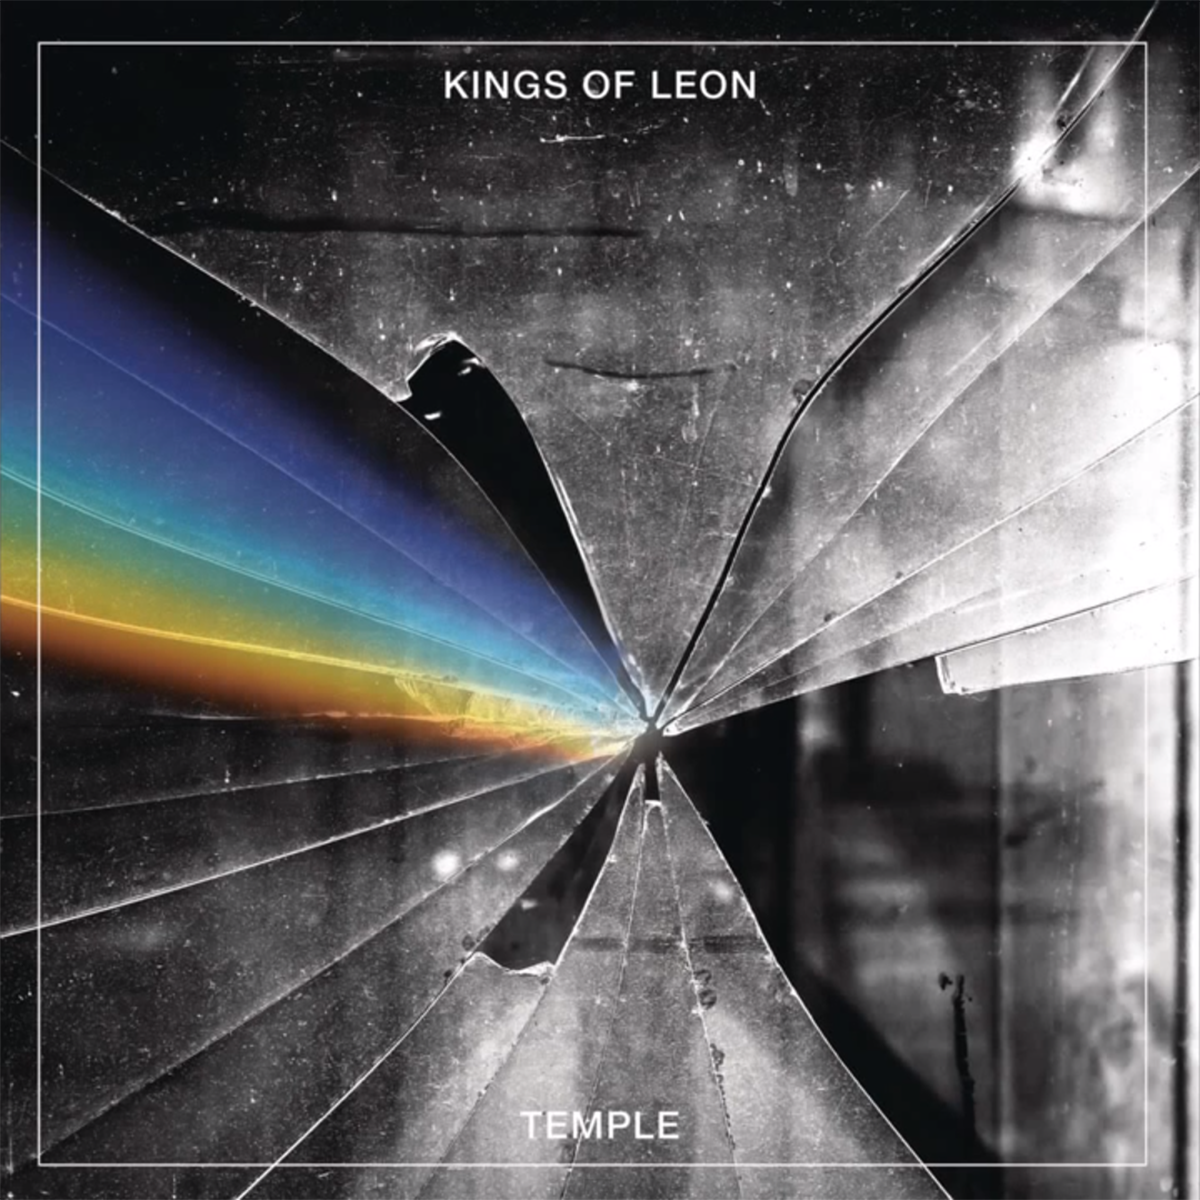 Kings-of-Leon-Temple-2013-1200x1200